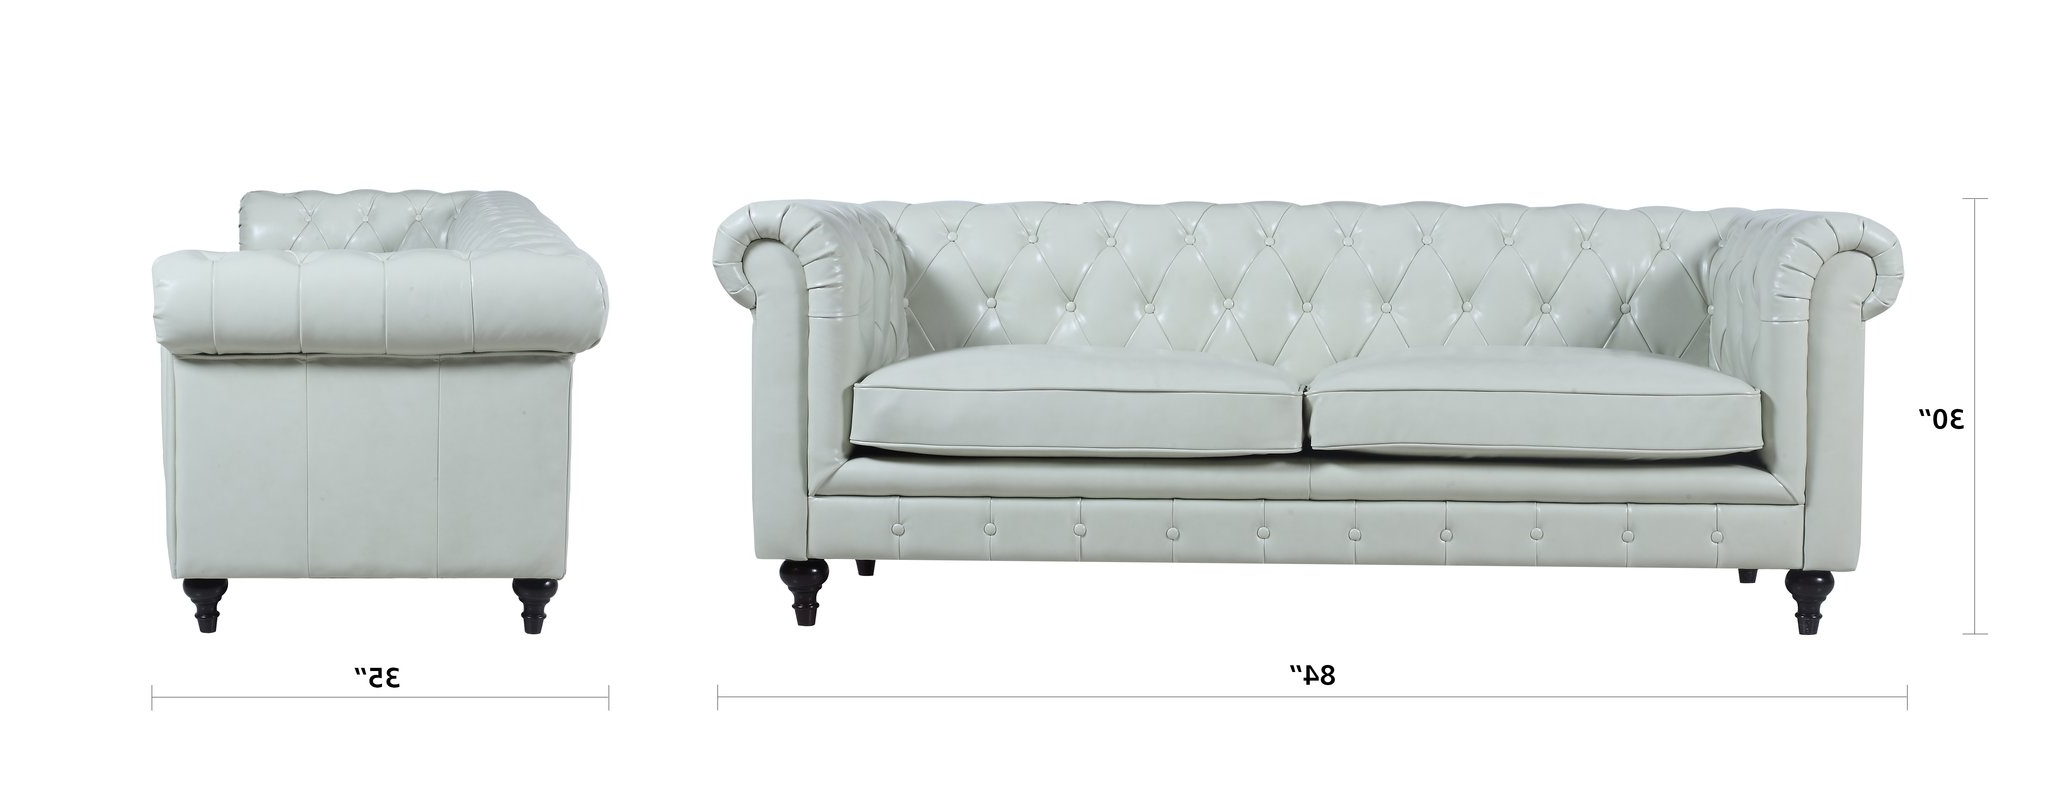 Joss & Main Throughout Tufted Leather Chesterfield Sofas (Gallery 12 of 15)